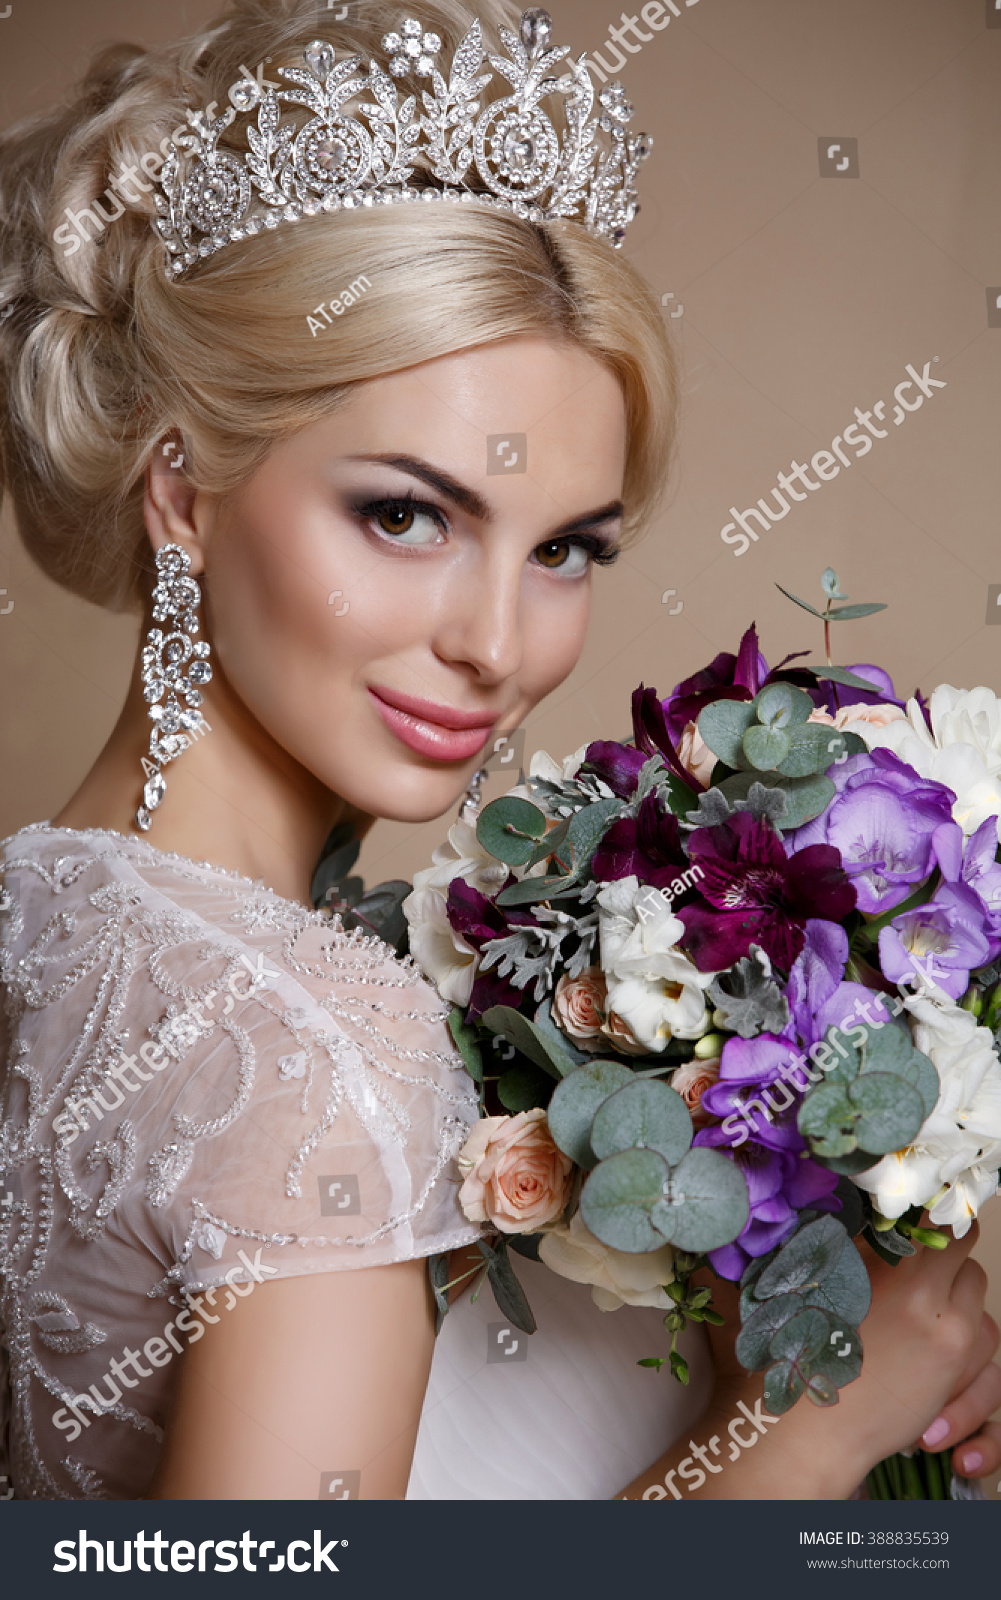 beautiful bride portrait wedding makeup hairstyle stock photo (edit